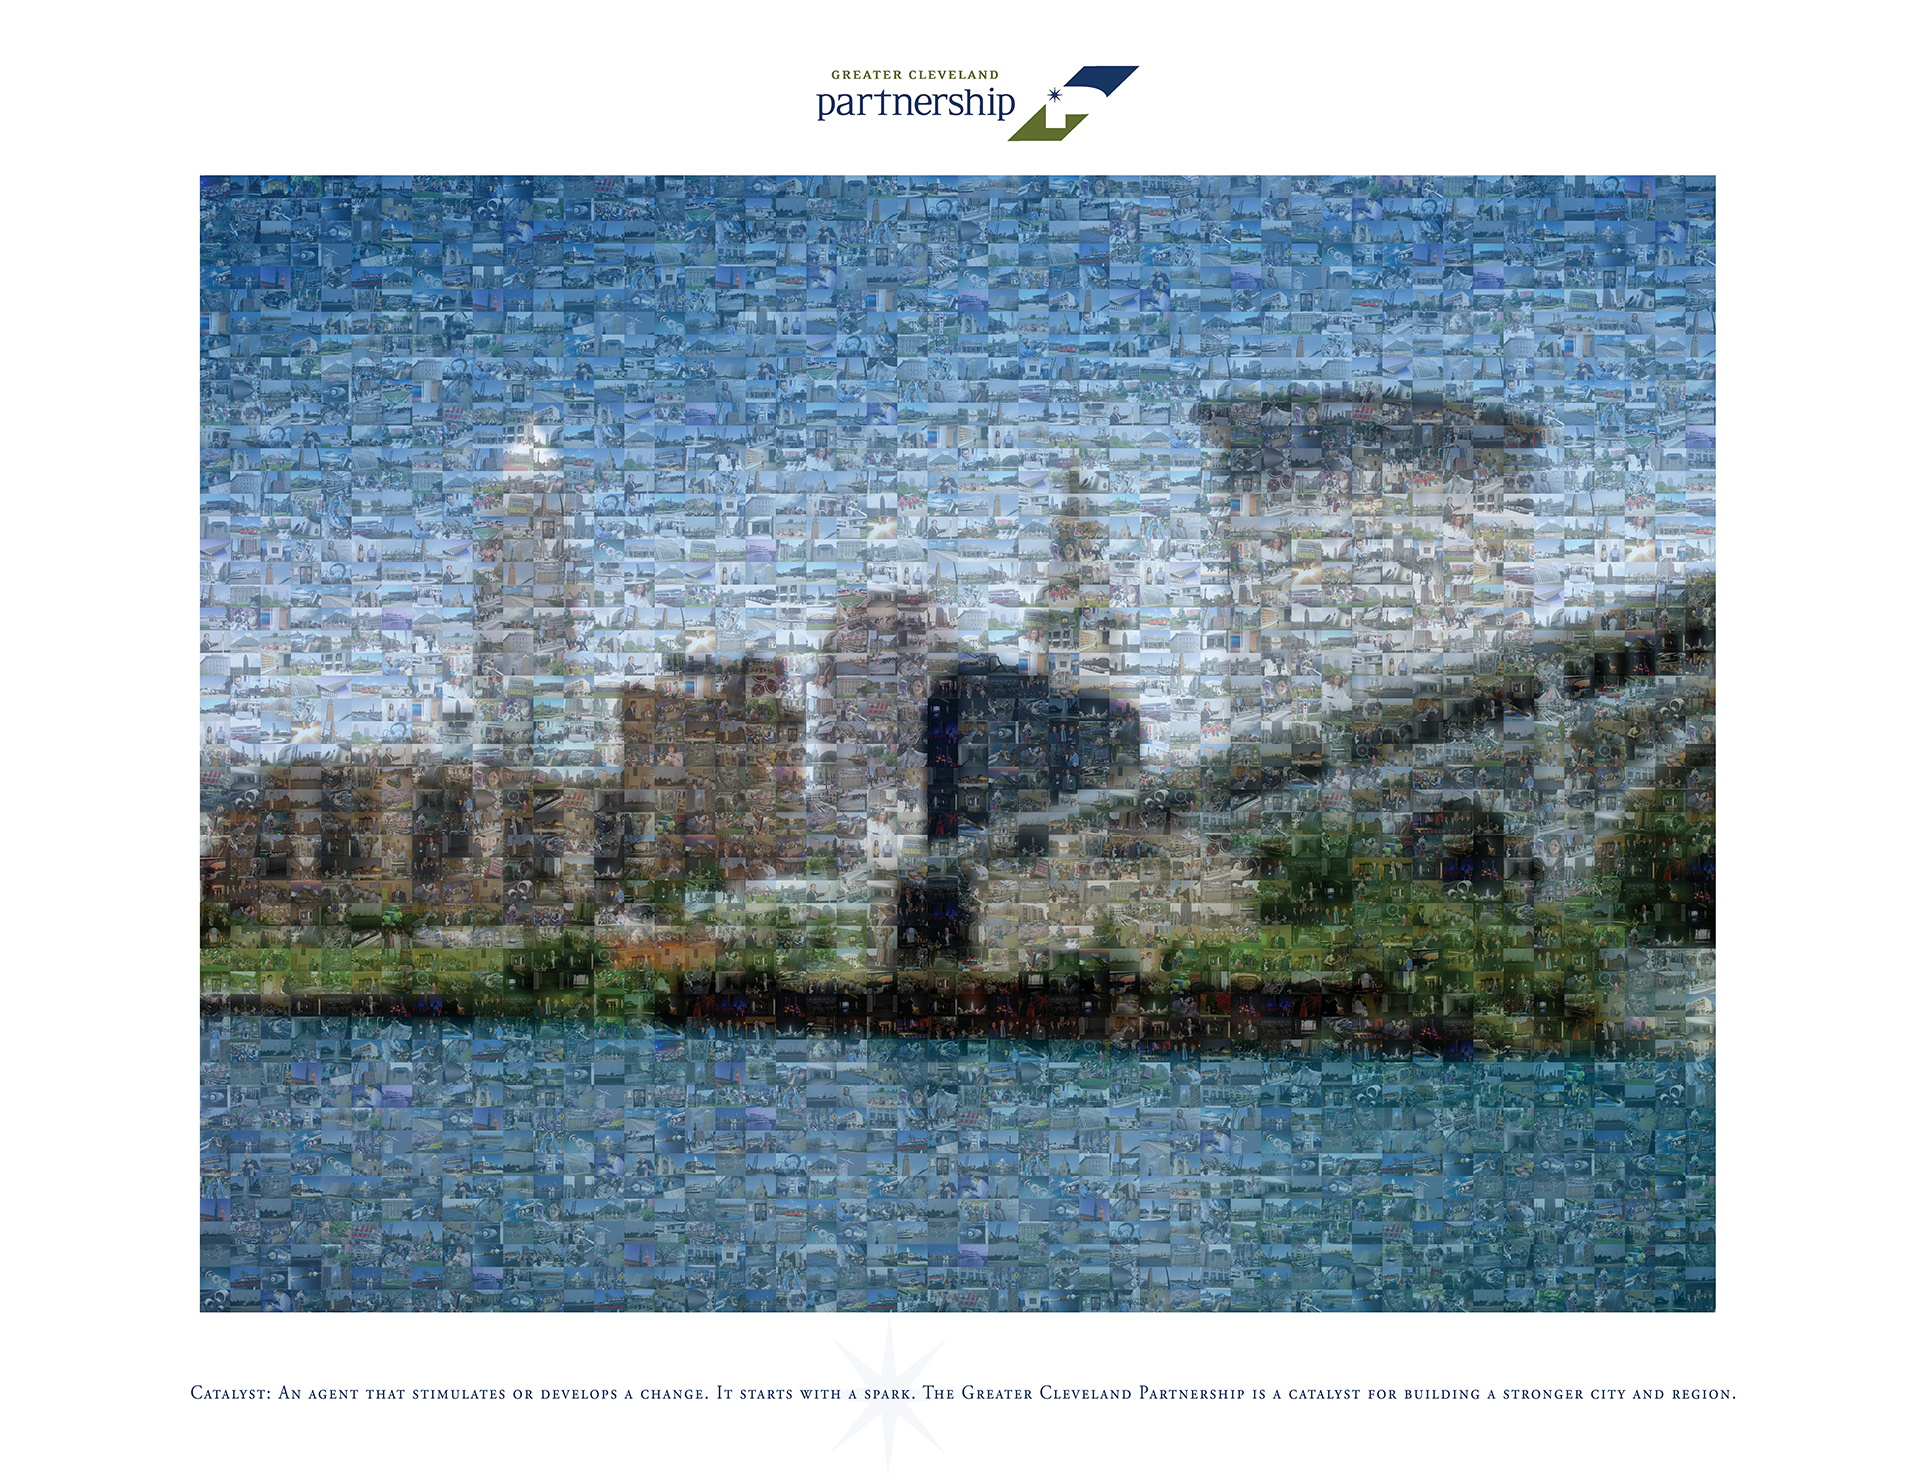 photo mosaic Greater Cleveland Partnership Corporate mosaic poster created using 430 photos of Cleveland